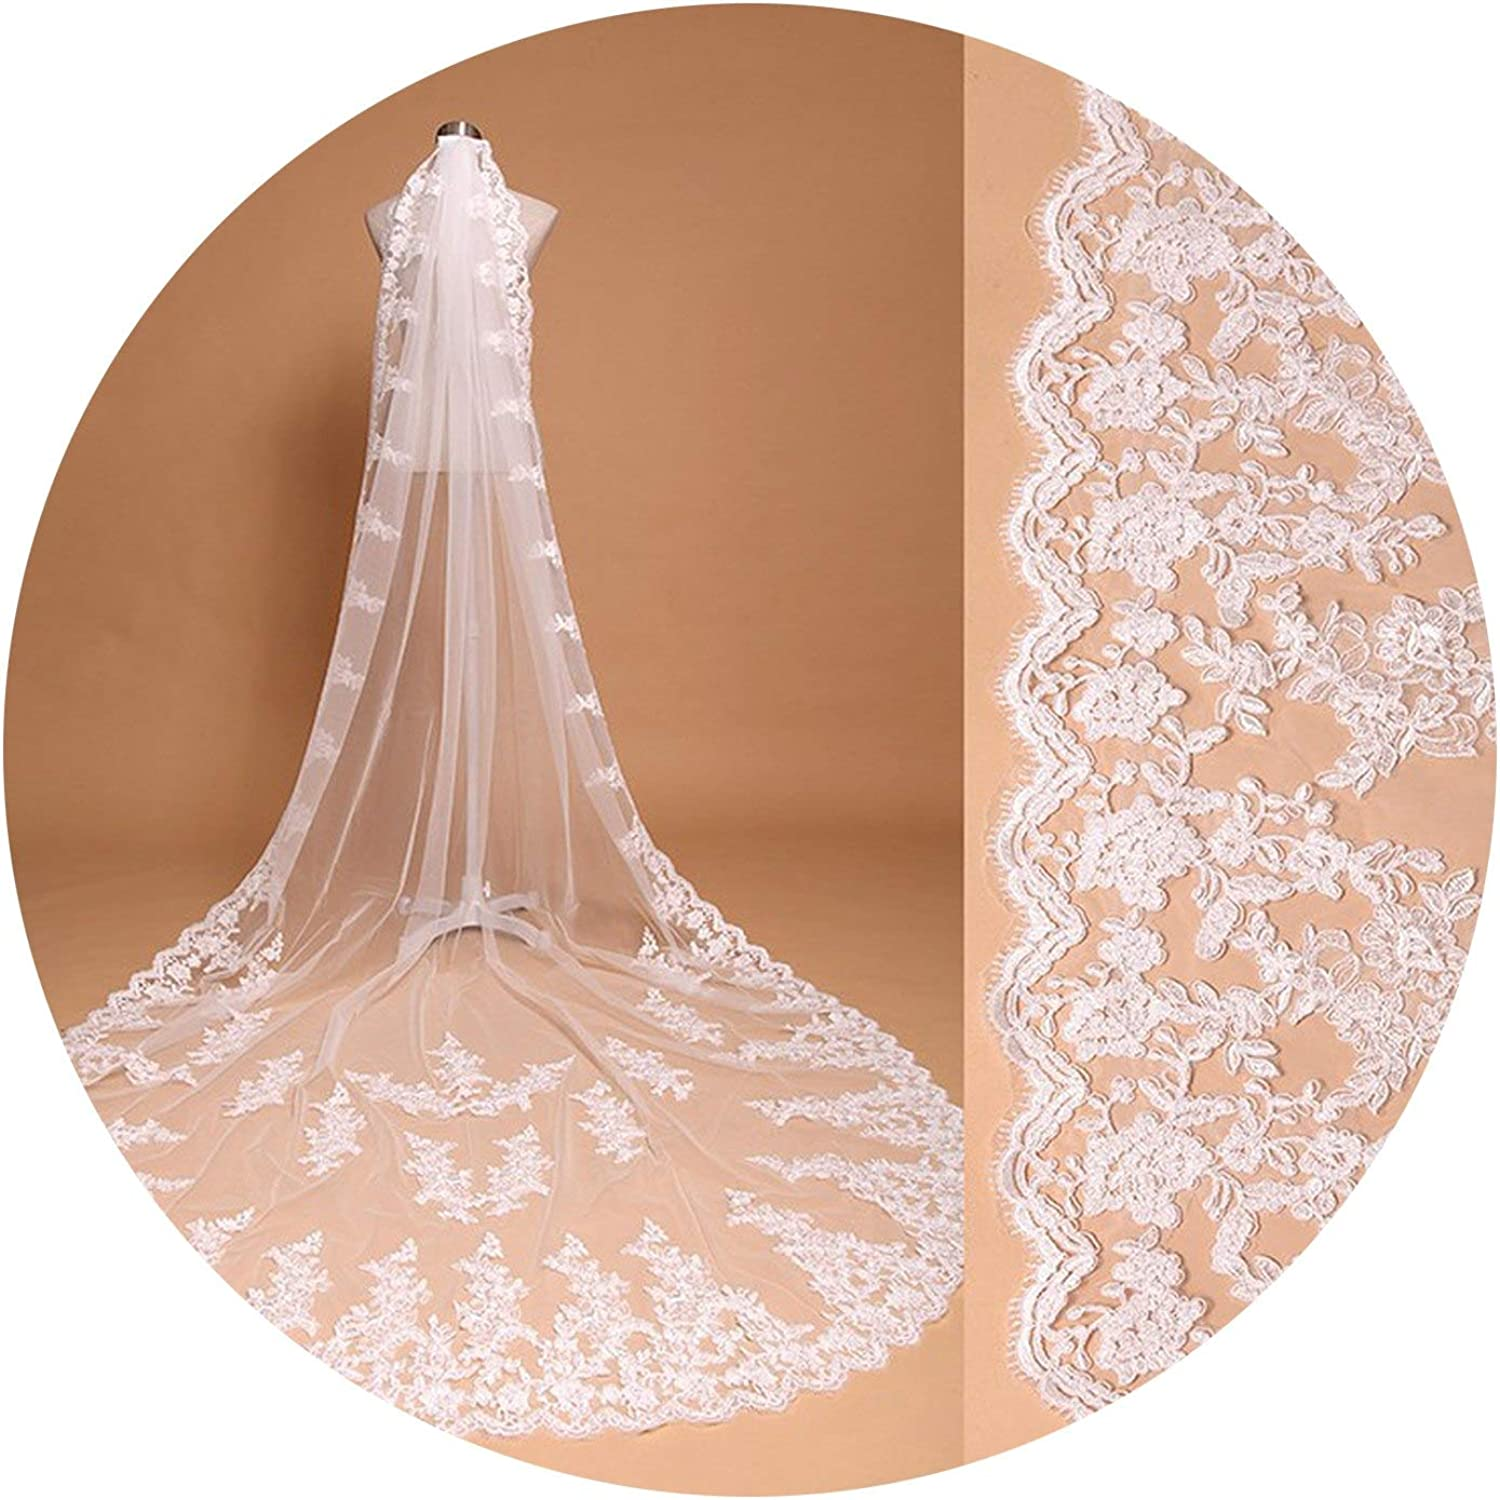 Wedding Veils Long Lace Edge Bridal Veil with Comb Wedding Accessories Bride Wedding Veil,Ivory